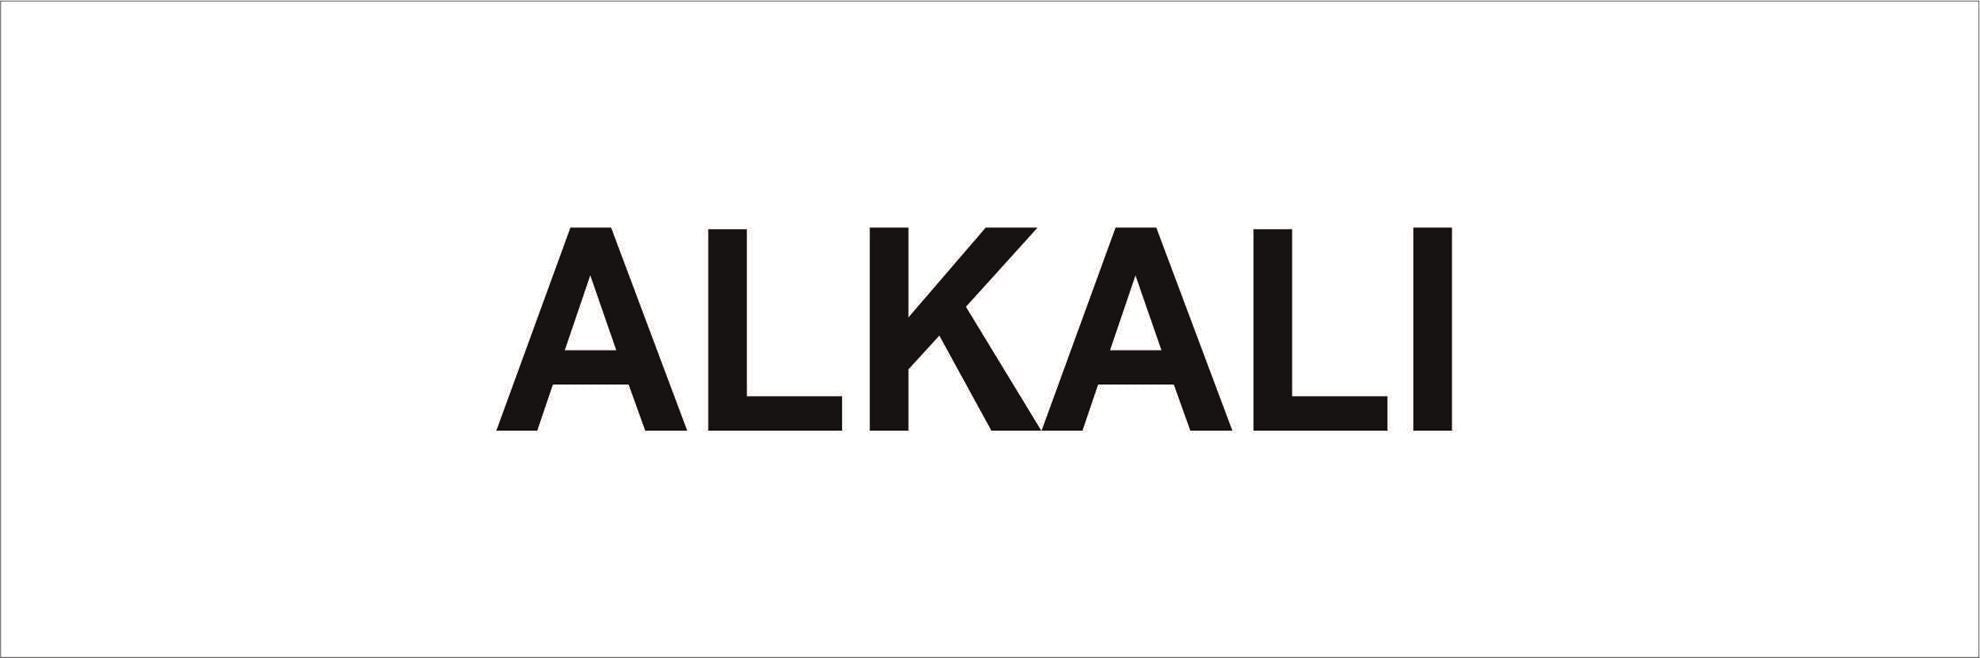 Pipeline Marking Label - ALKALI